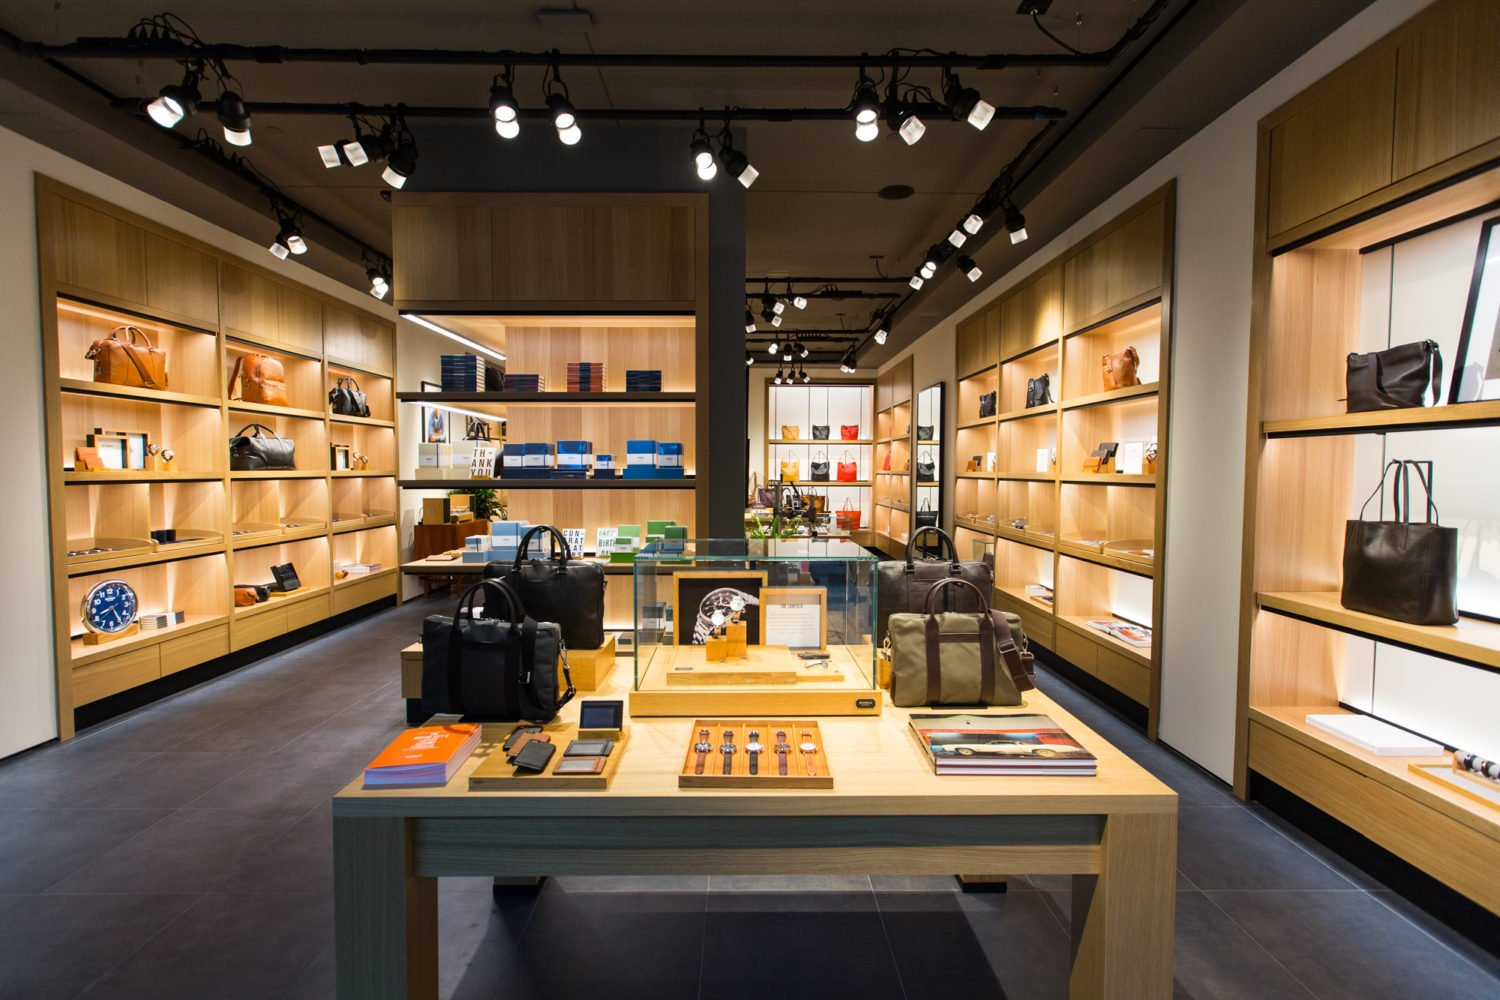 Shinola opening today at Tysons Corner Center